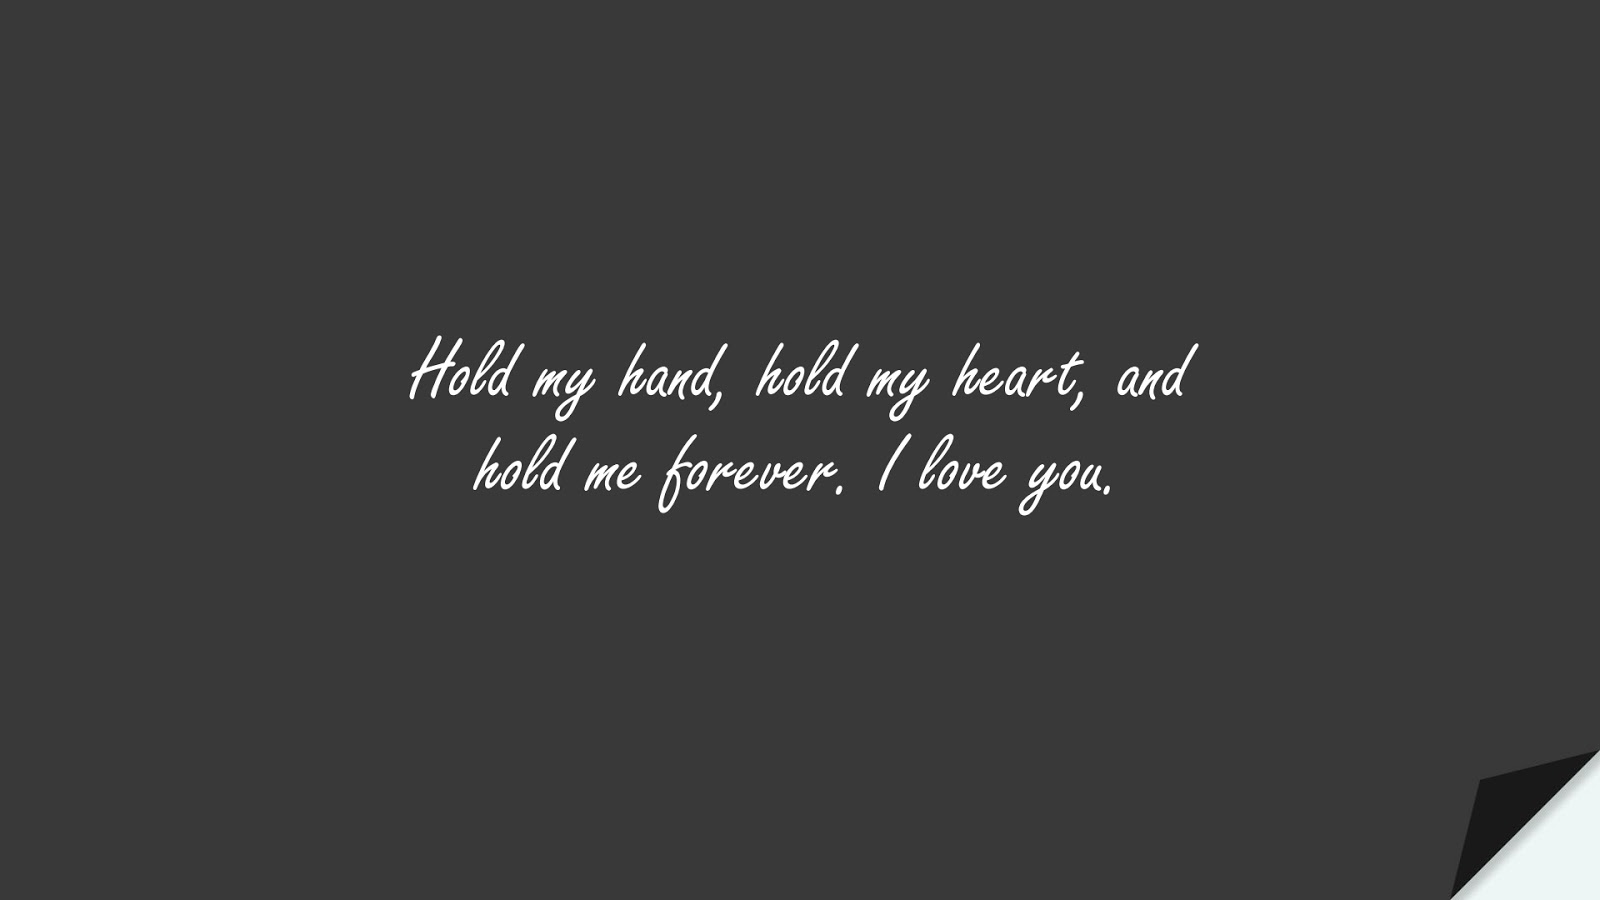 Hold my hand, hold my heart, and hold me forever. I love you.FALSE